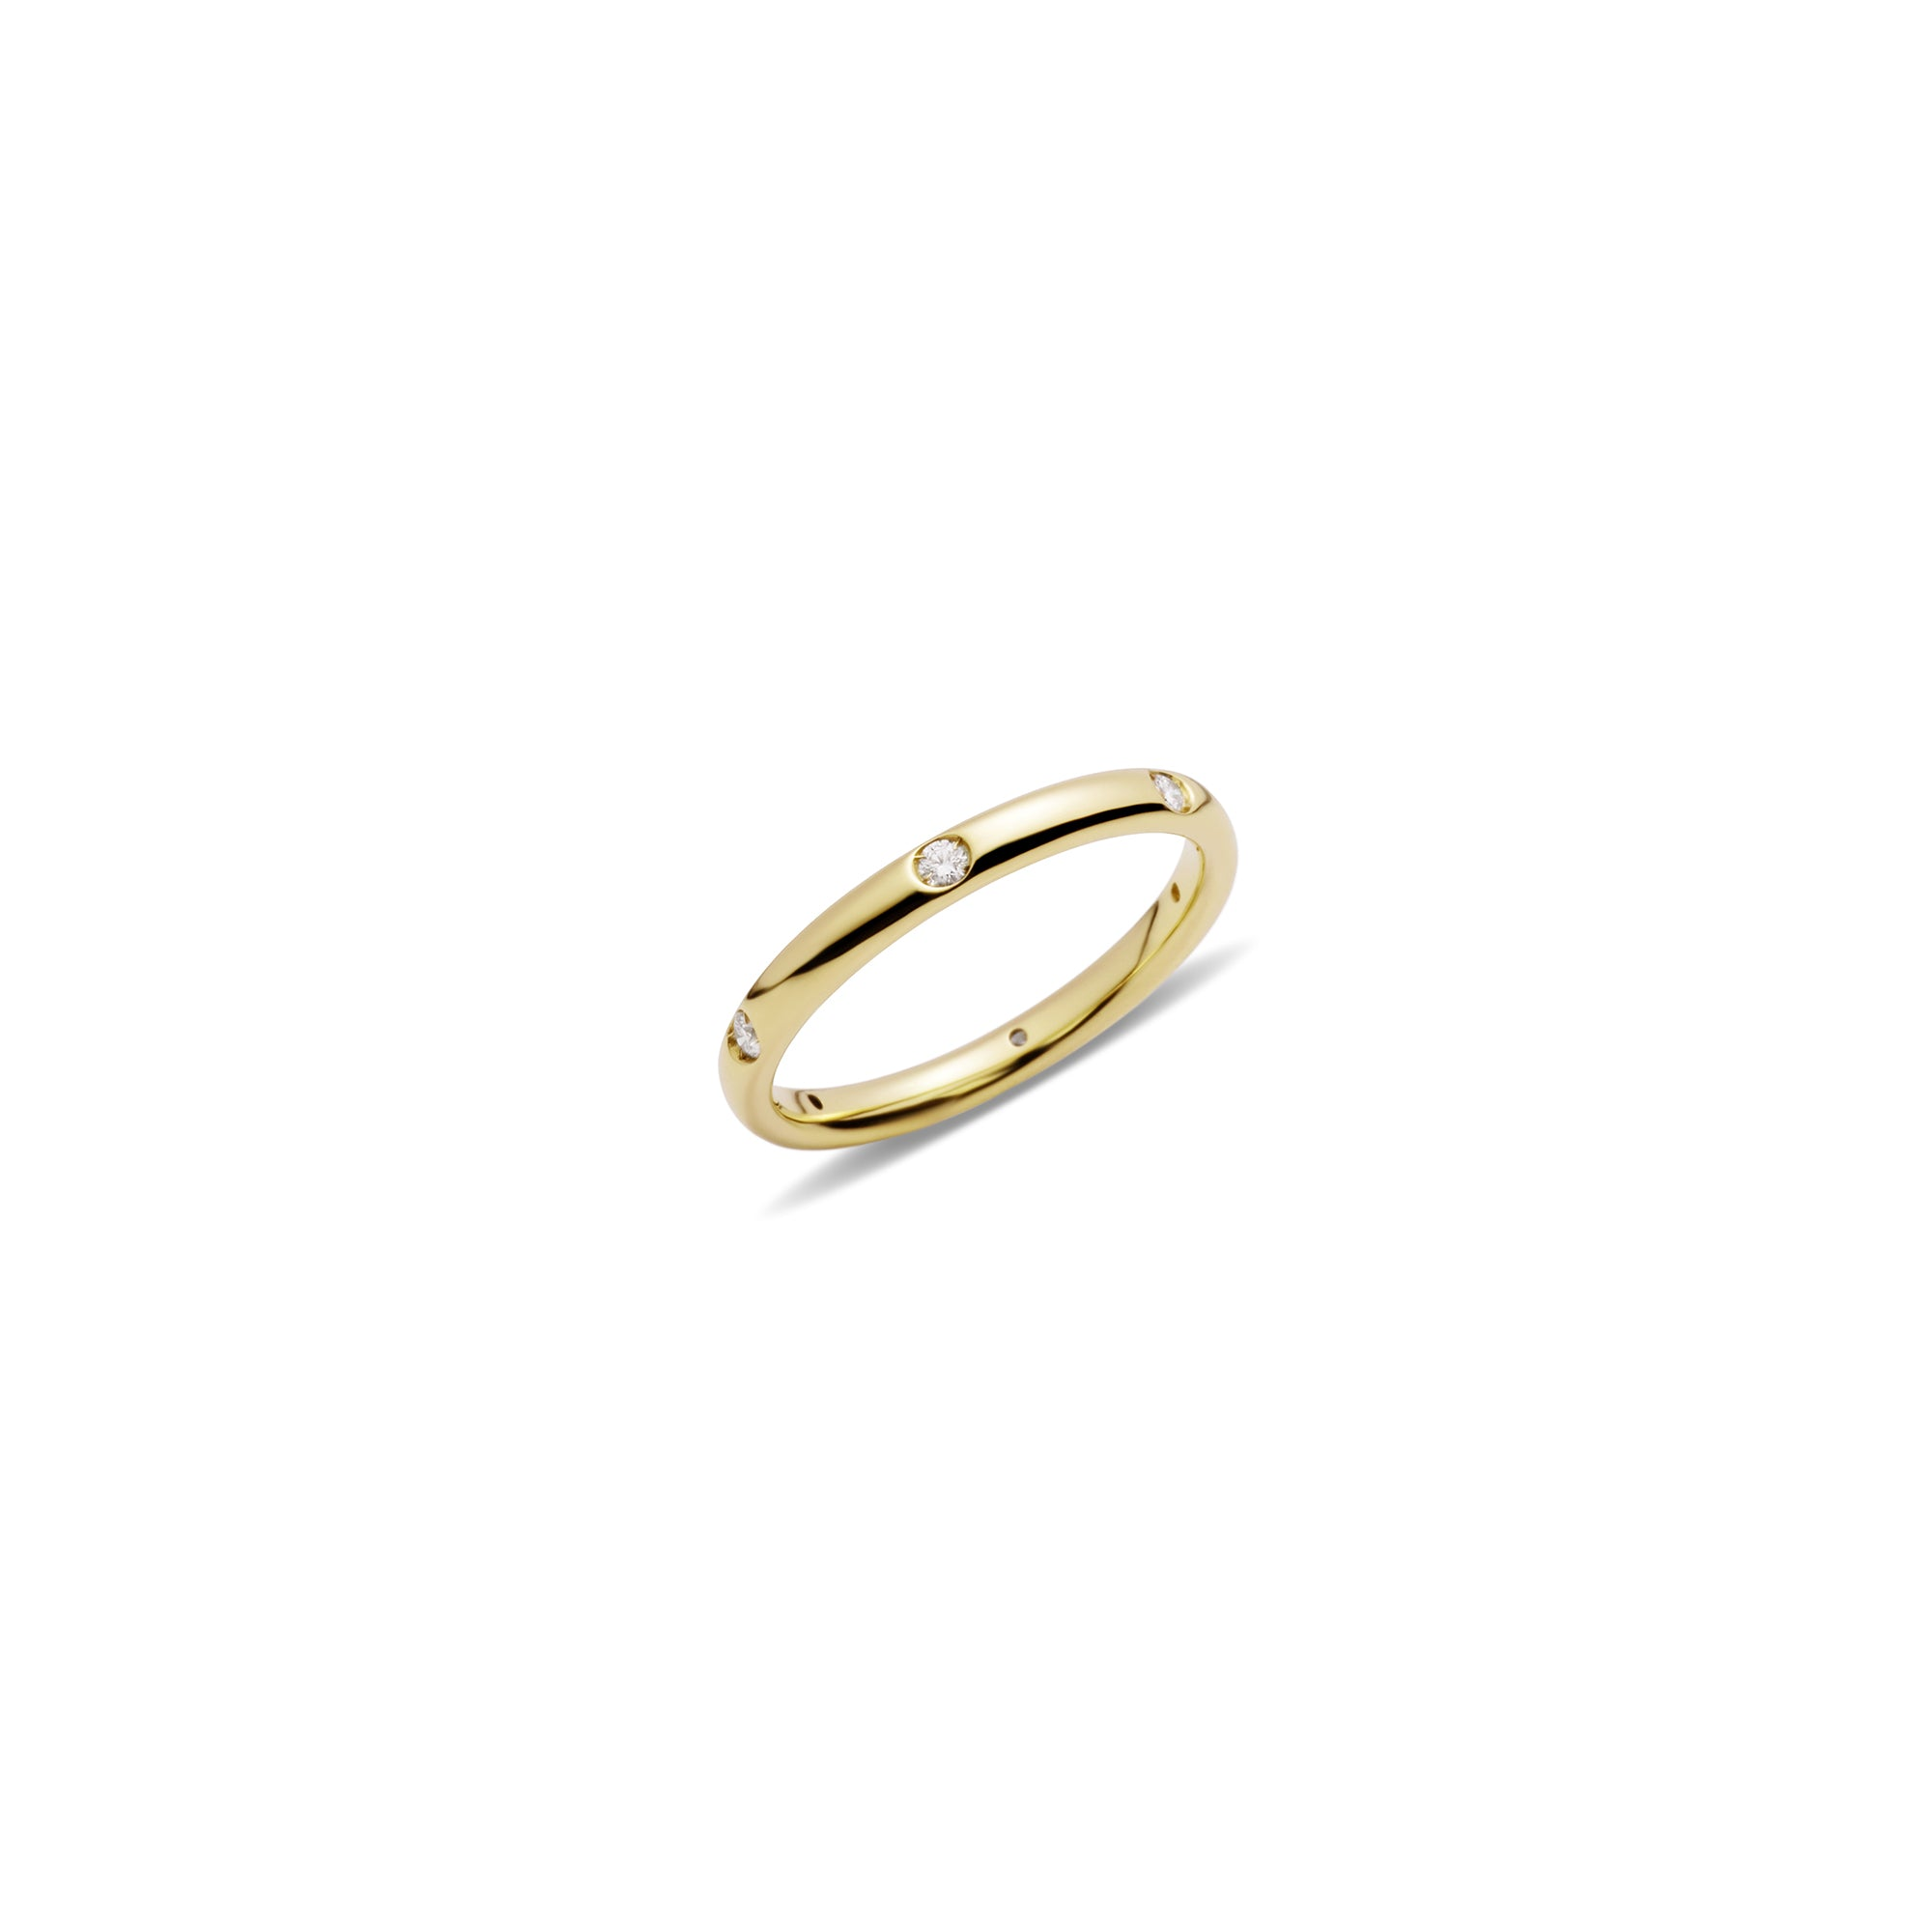 Lucciole Ring in 18k Yellow Gold with Diamonds - Orsini Jewellers NZ